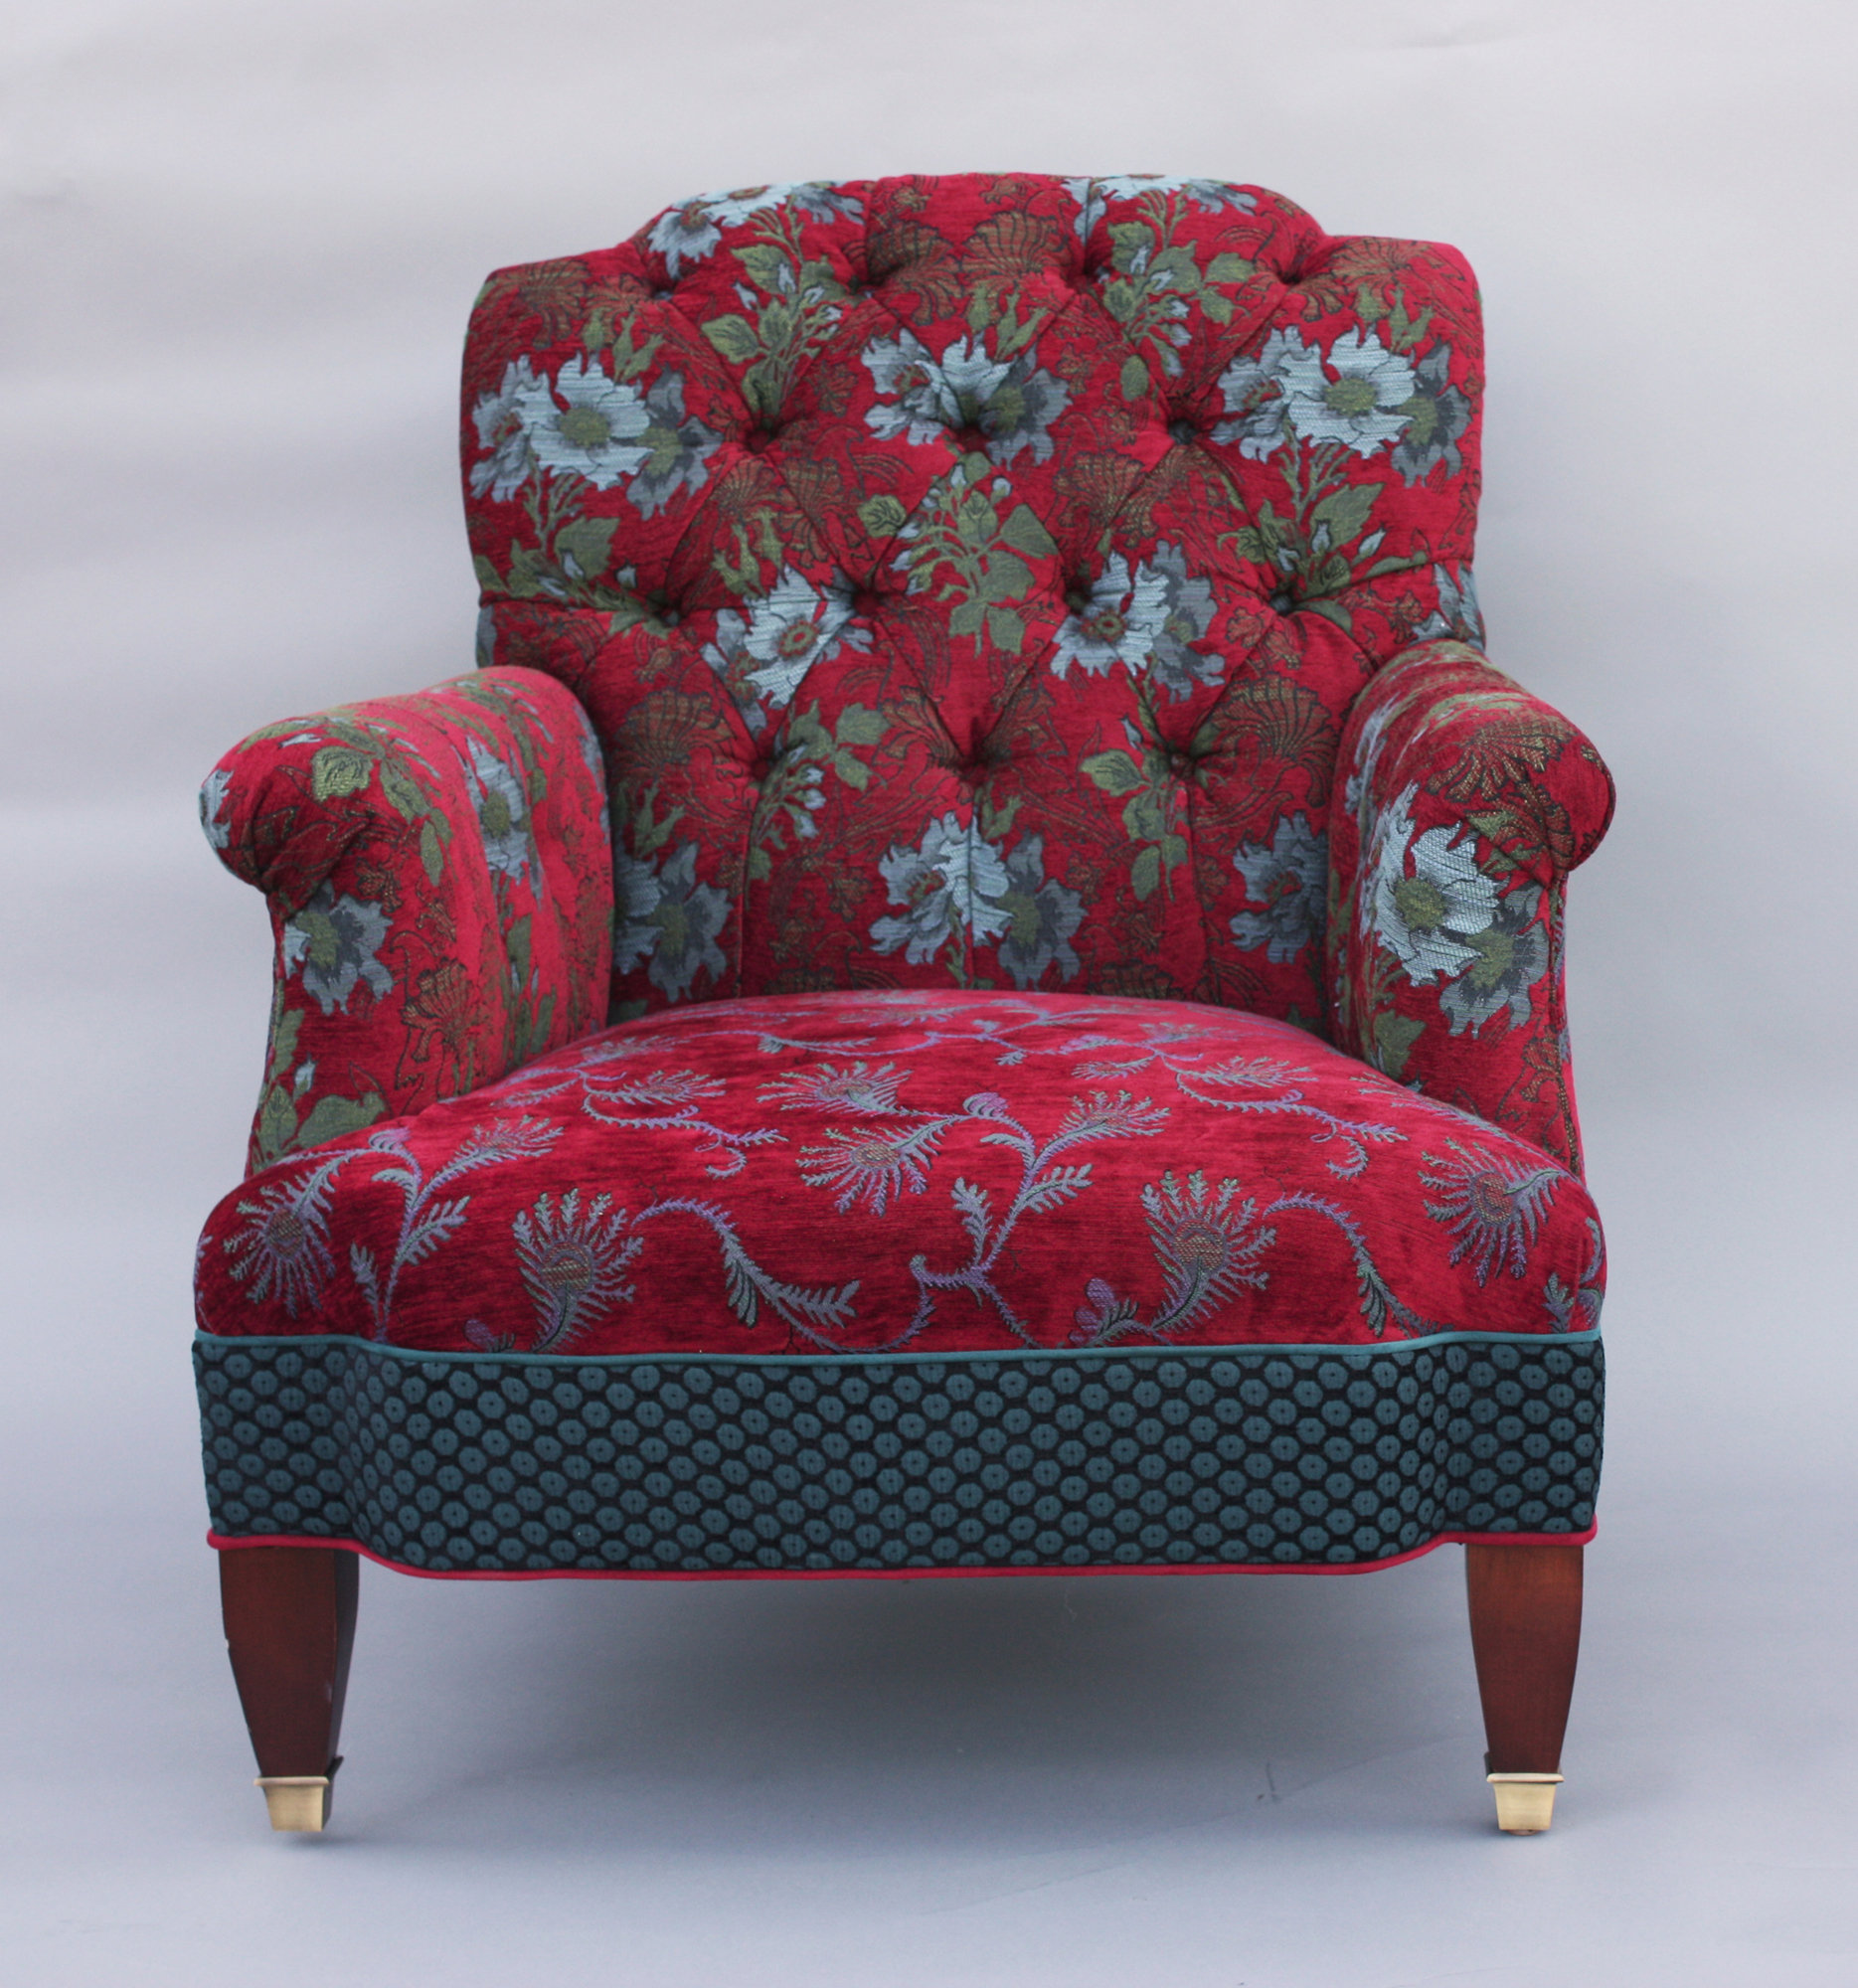 Chelsea Chair in Red Wine by Mary Lynn OShea Upholstered